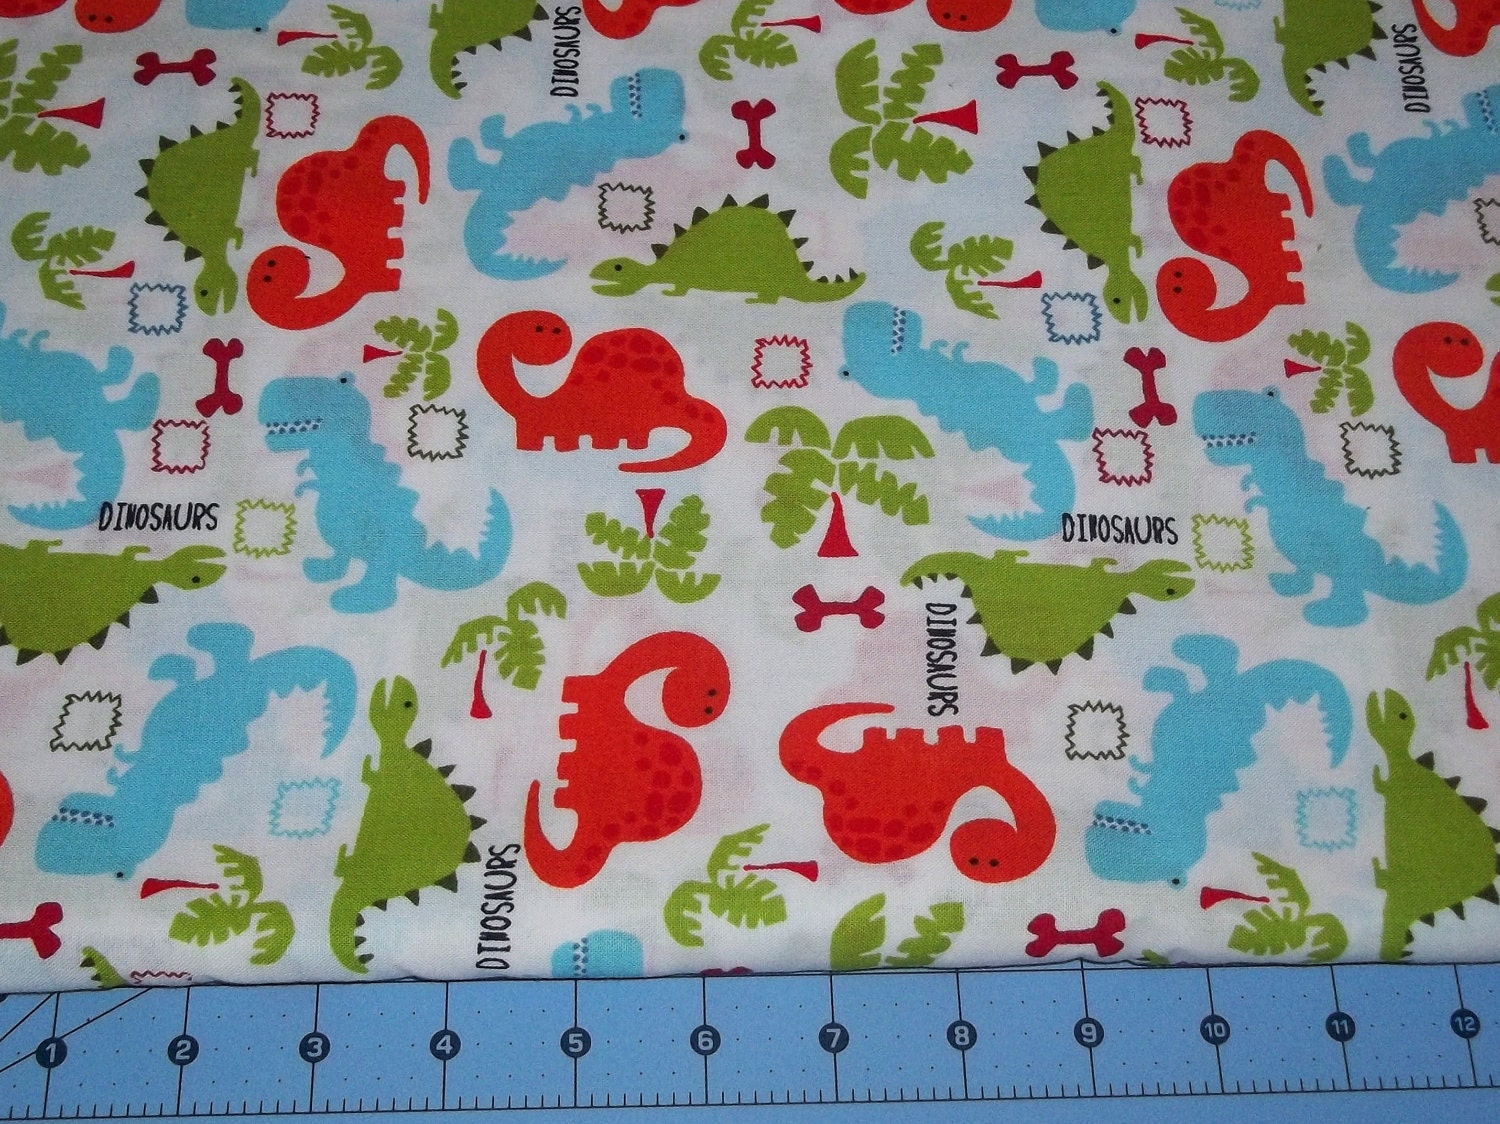 Dinosaur fabric by the half yard for Dinosaur fabric